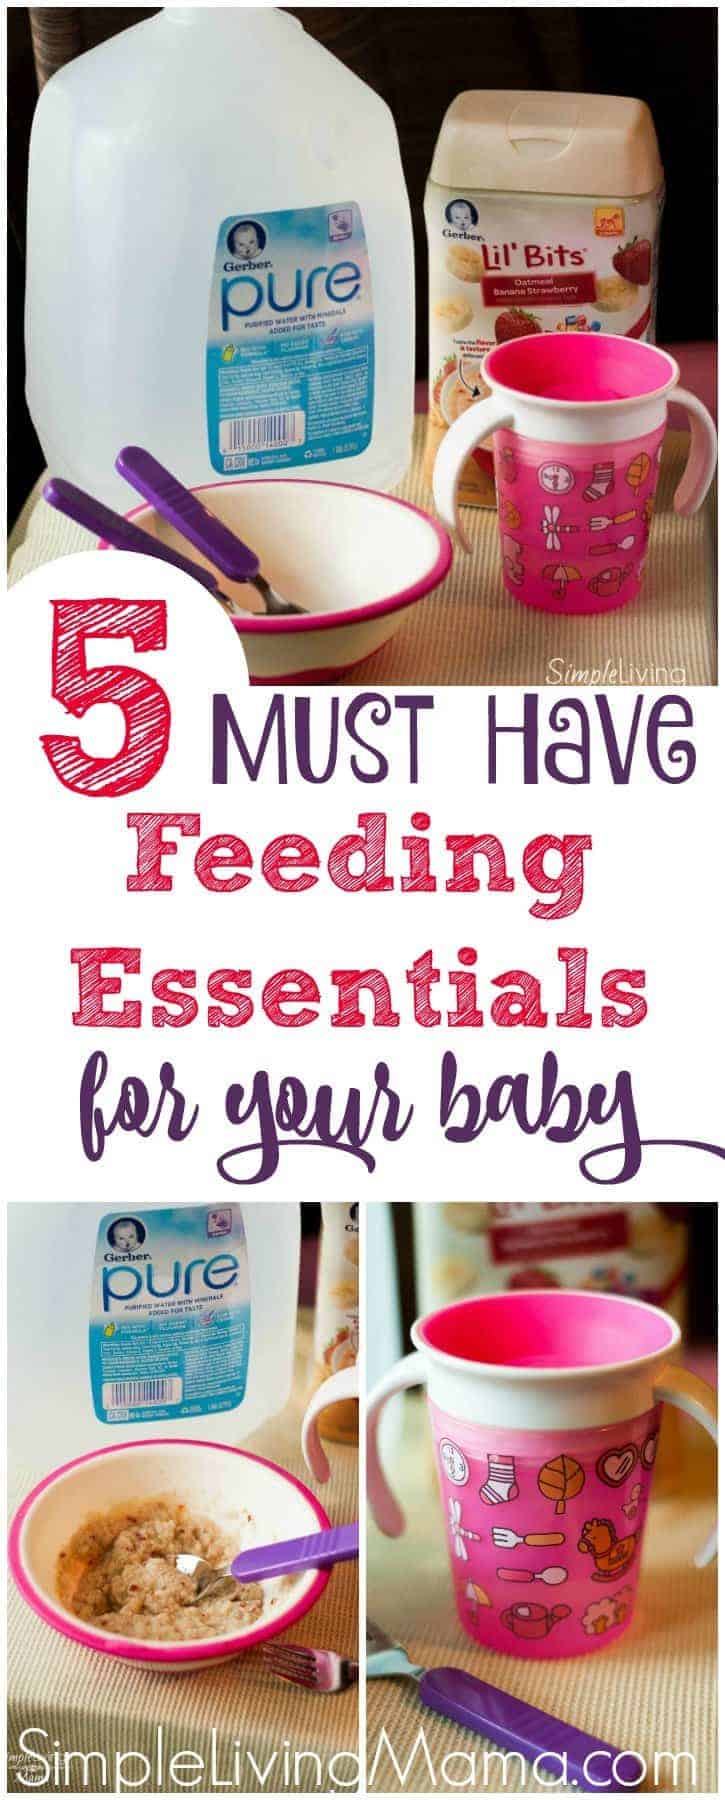 These 5 must have feeding essentials for your new baby will help make the transition to solids a little easier!